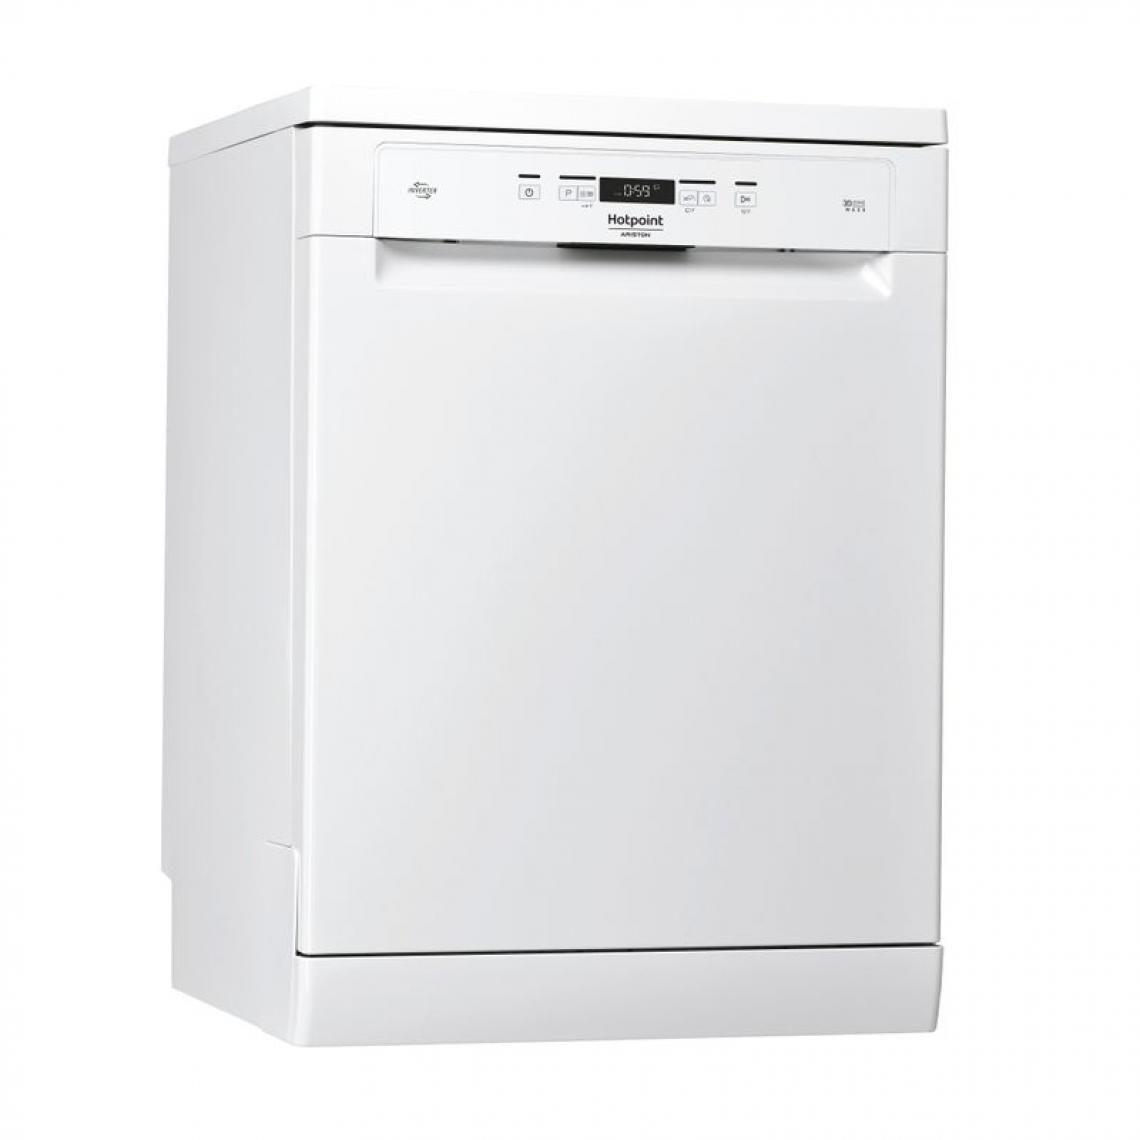 Hotpoint Lave vaisselle HOTPOINT HFC3T232WG 14 couverts